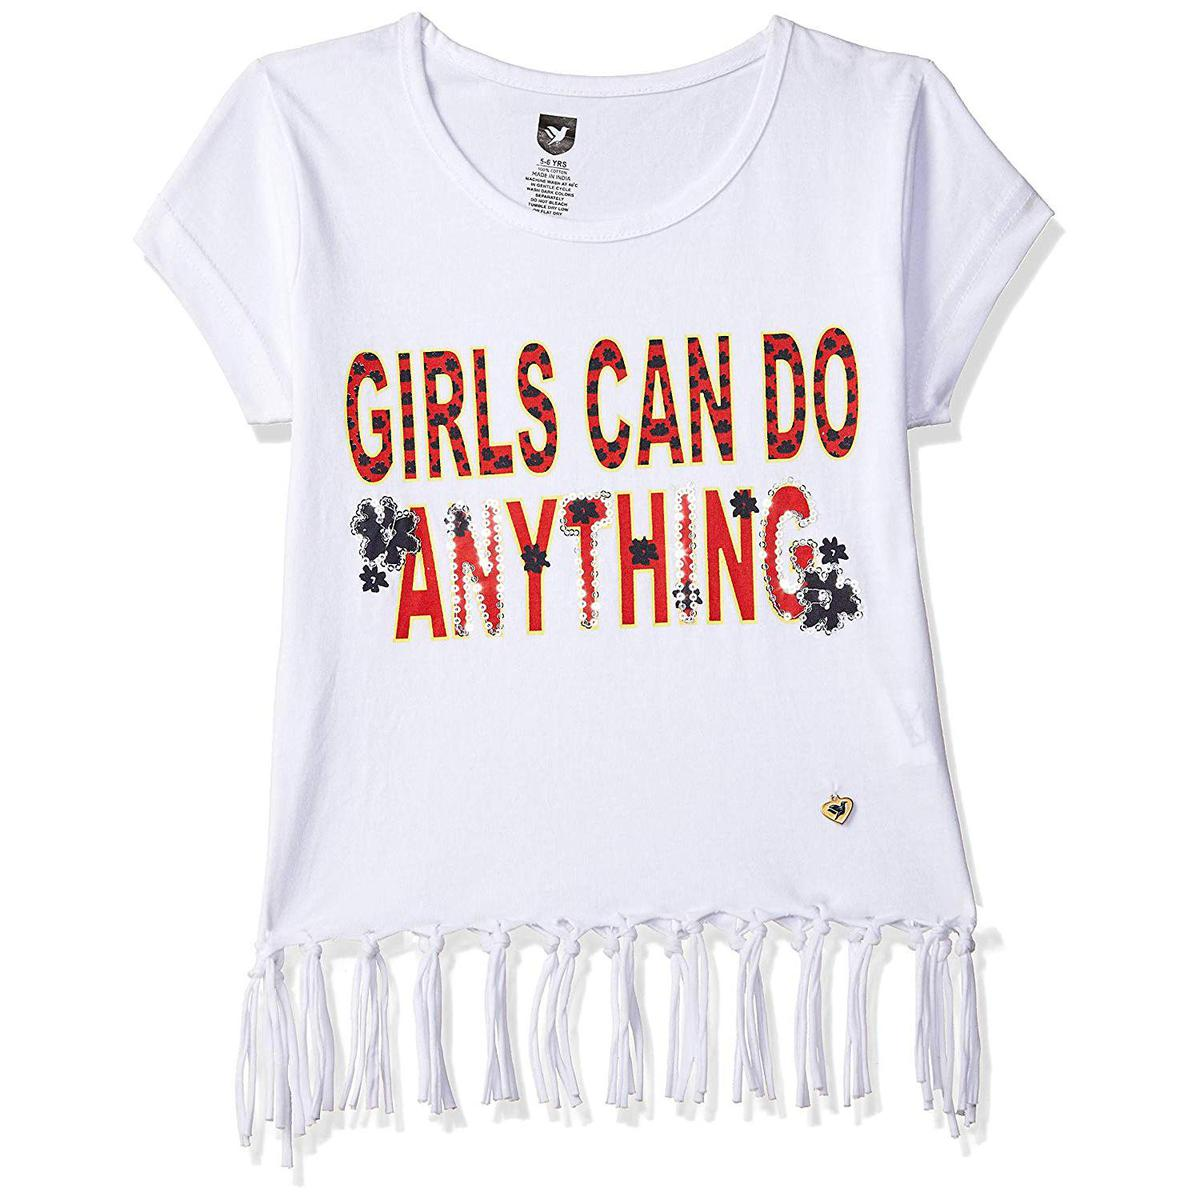 612 League - White Colored Girls Can Do Anything Knit Graphic Cotton Top For Girls